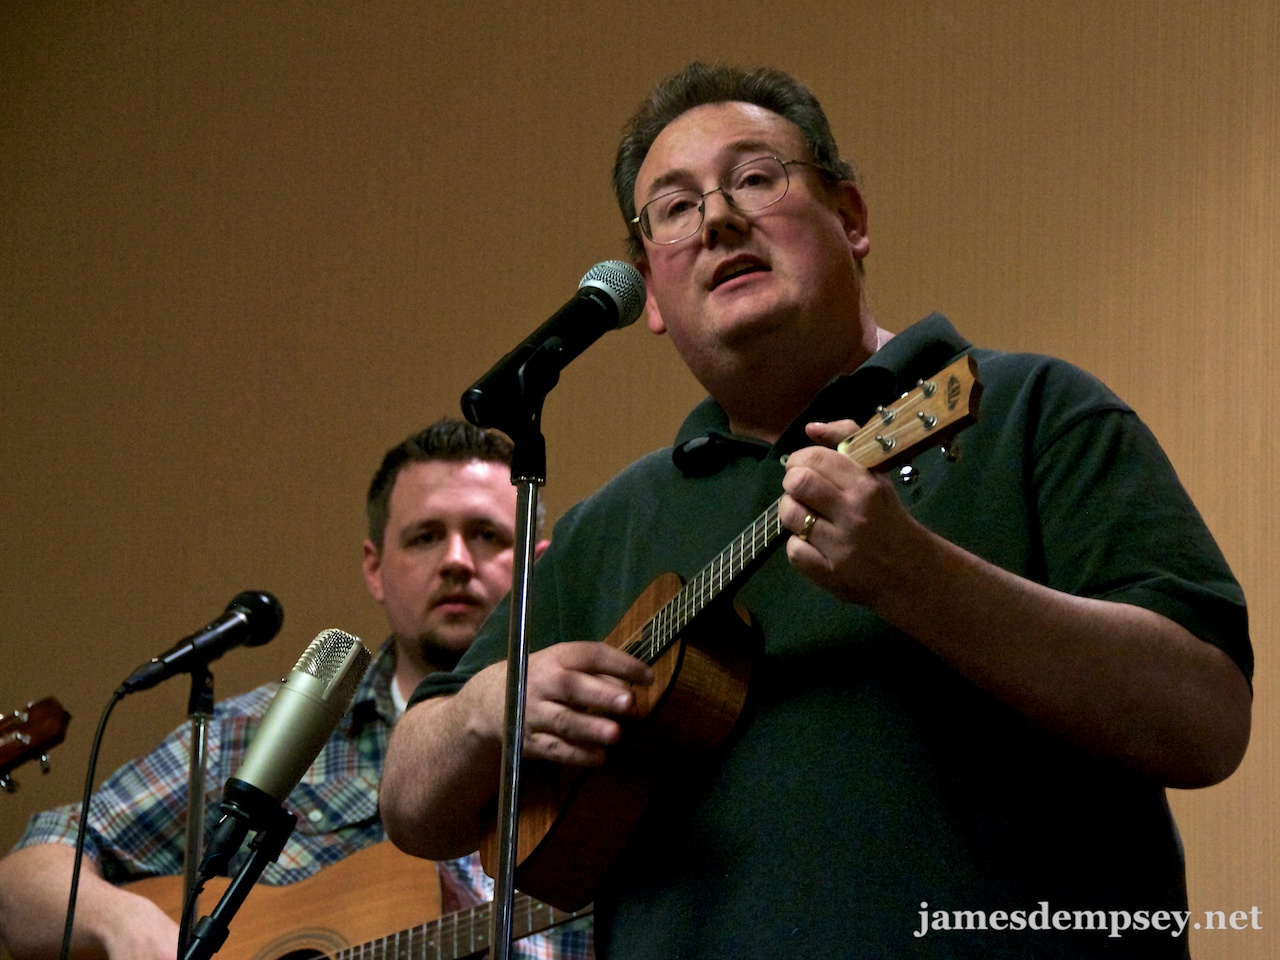 James Dempsey playing ukulele and singing and Ben Scheirman playing the guitar